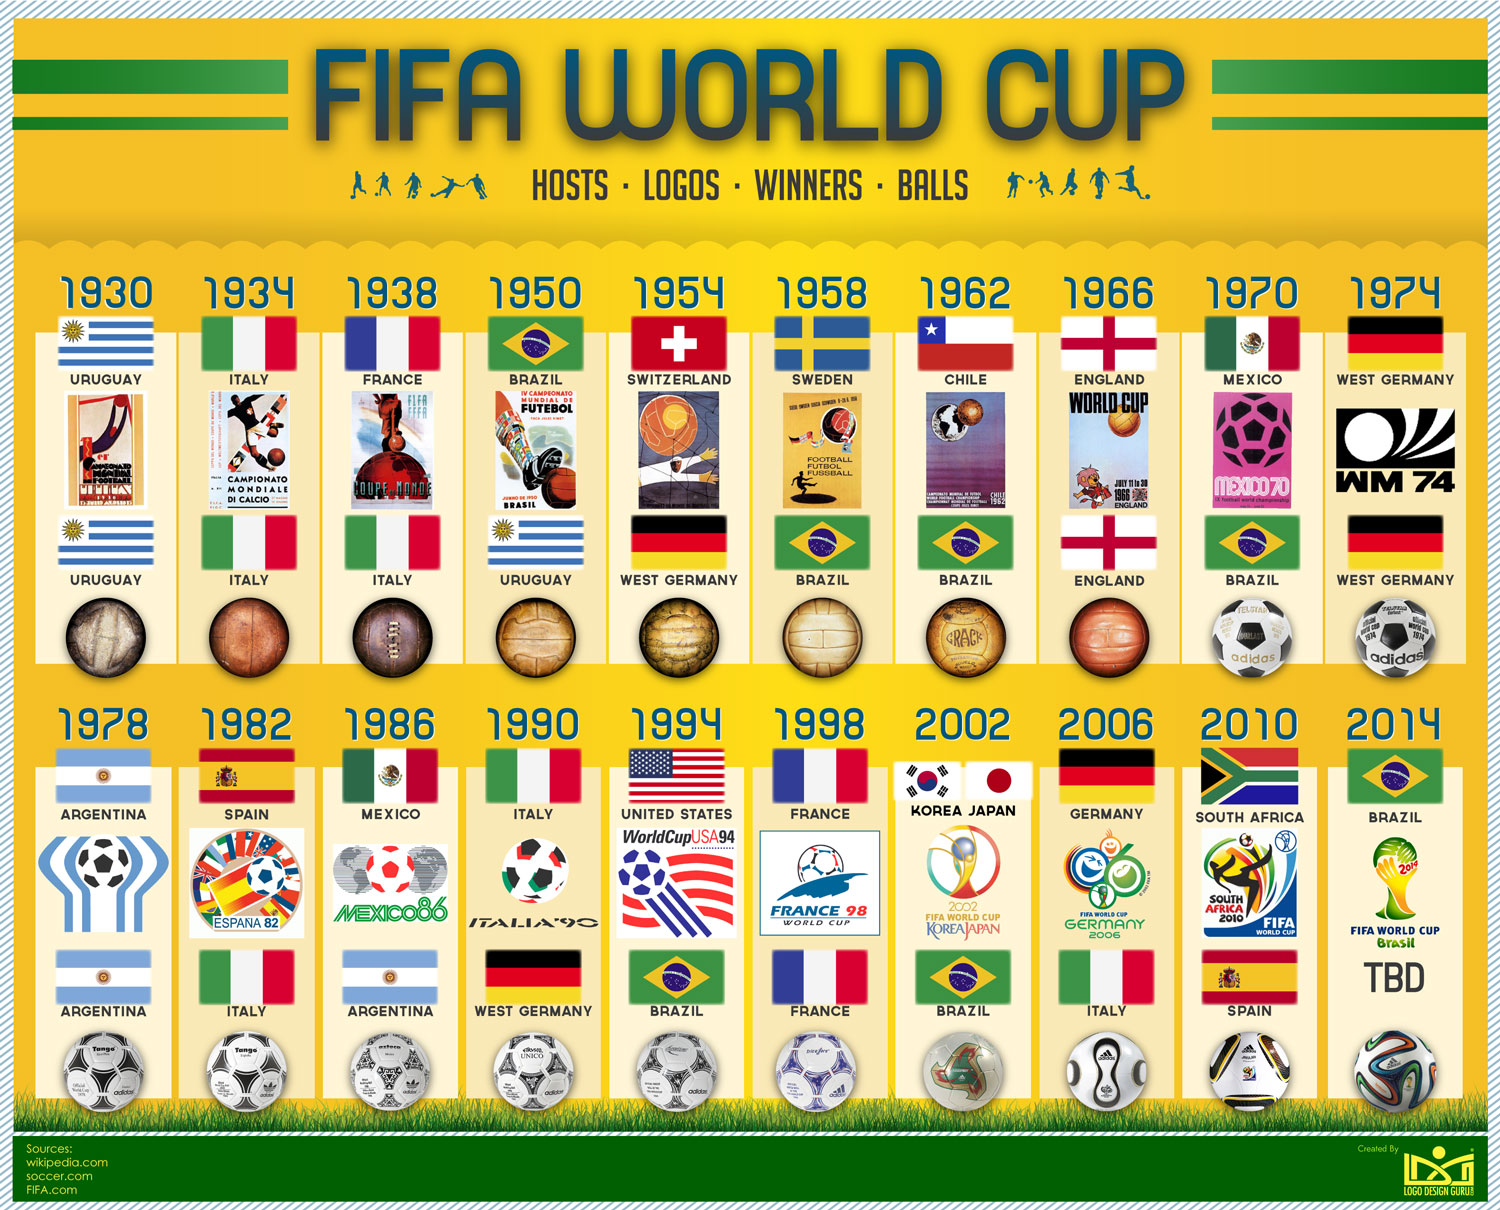 FIFA World Cup History